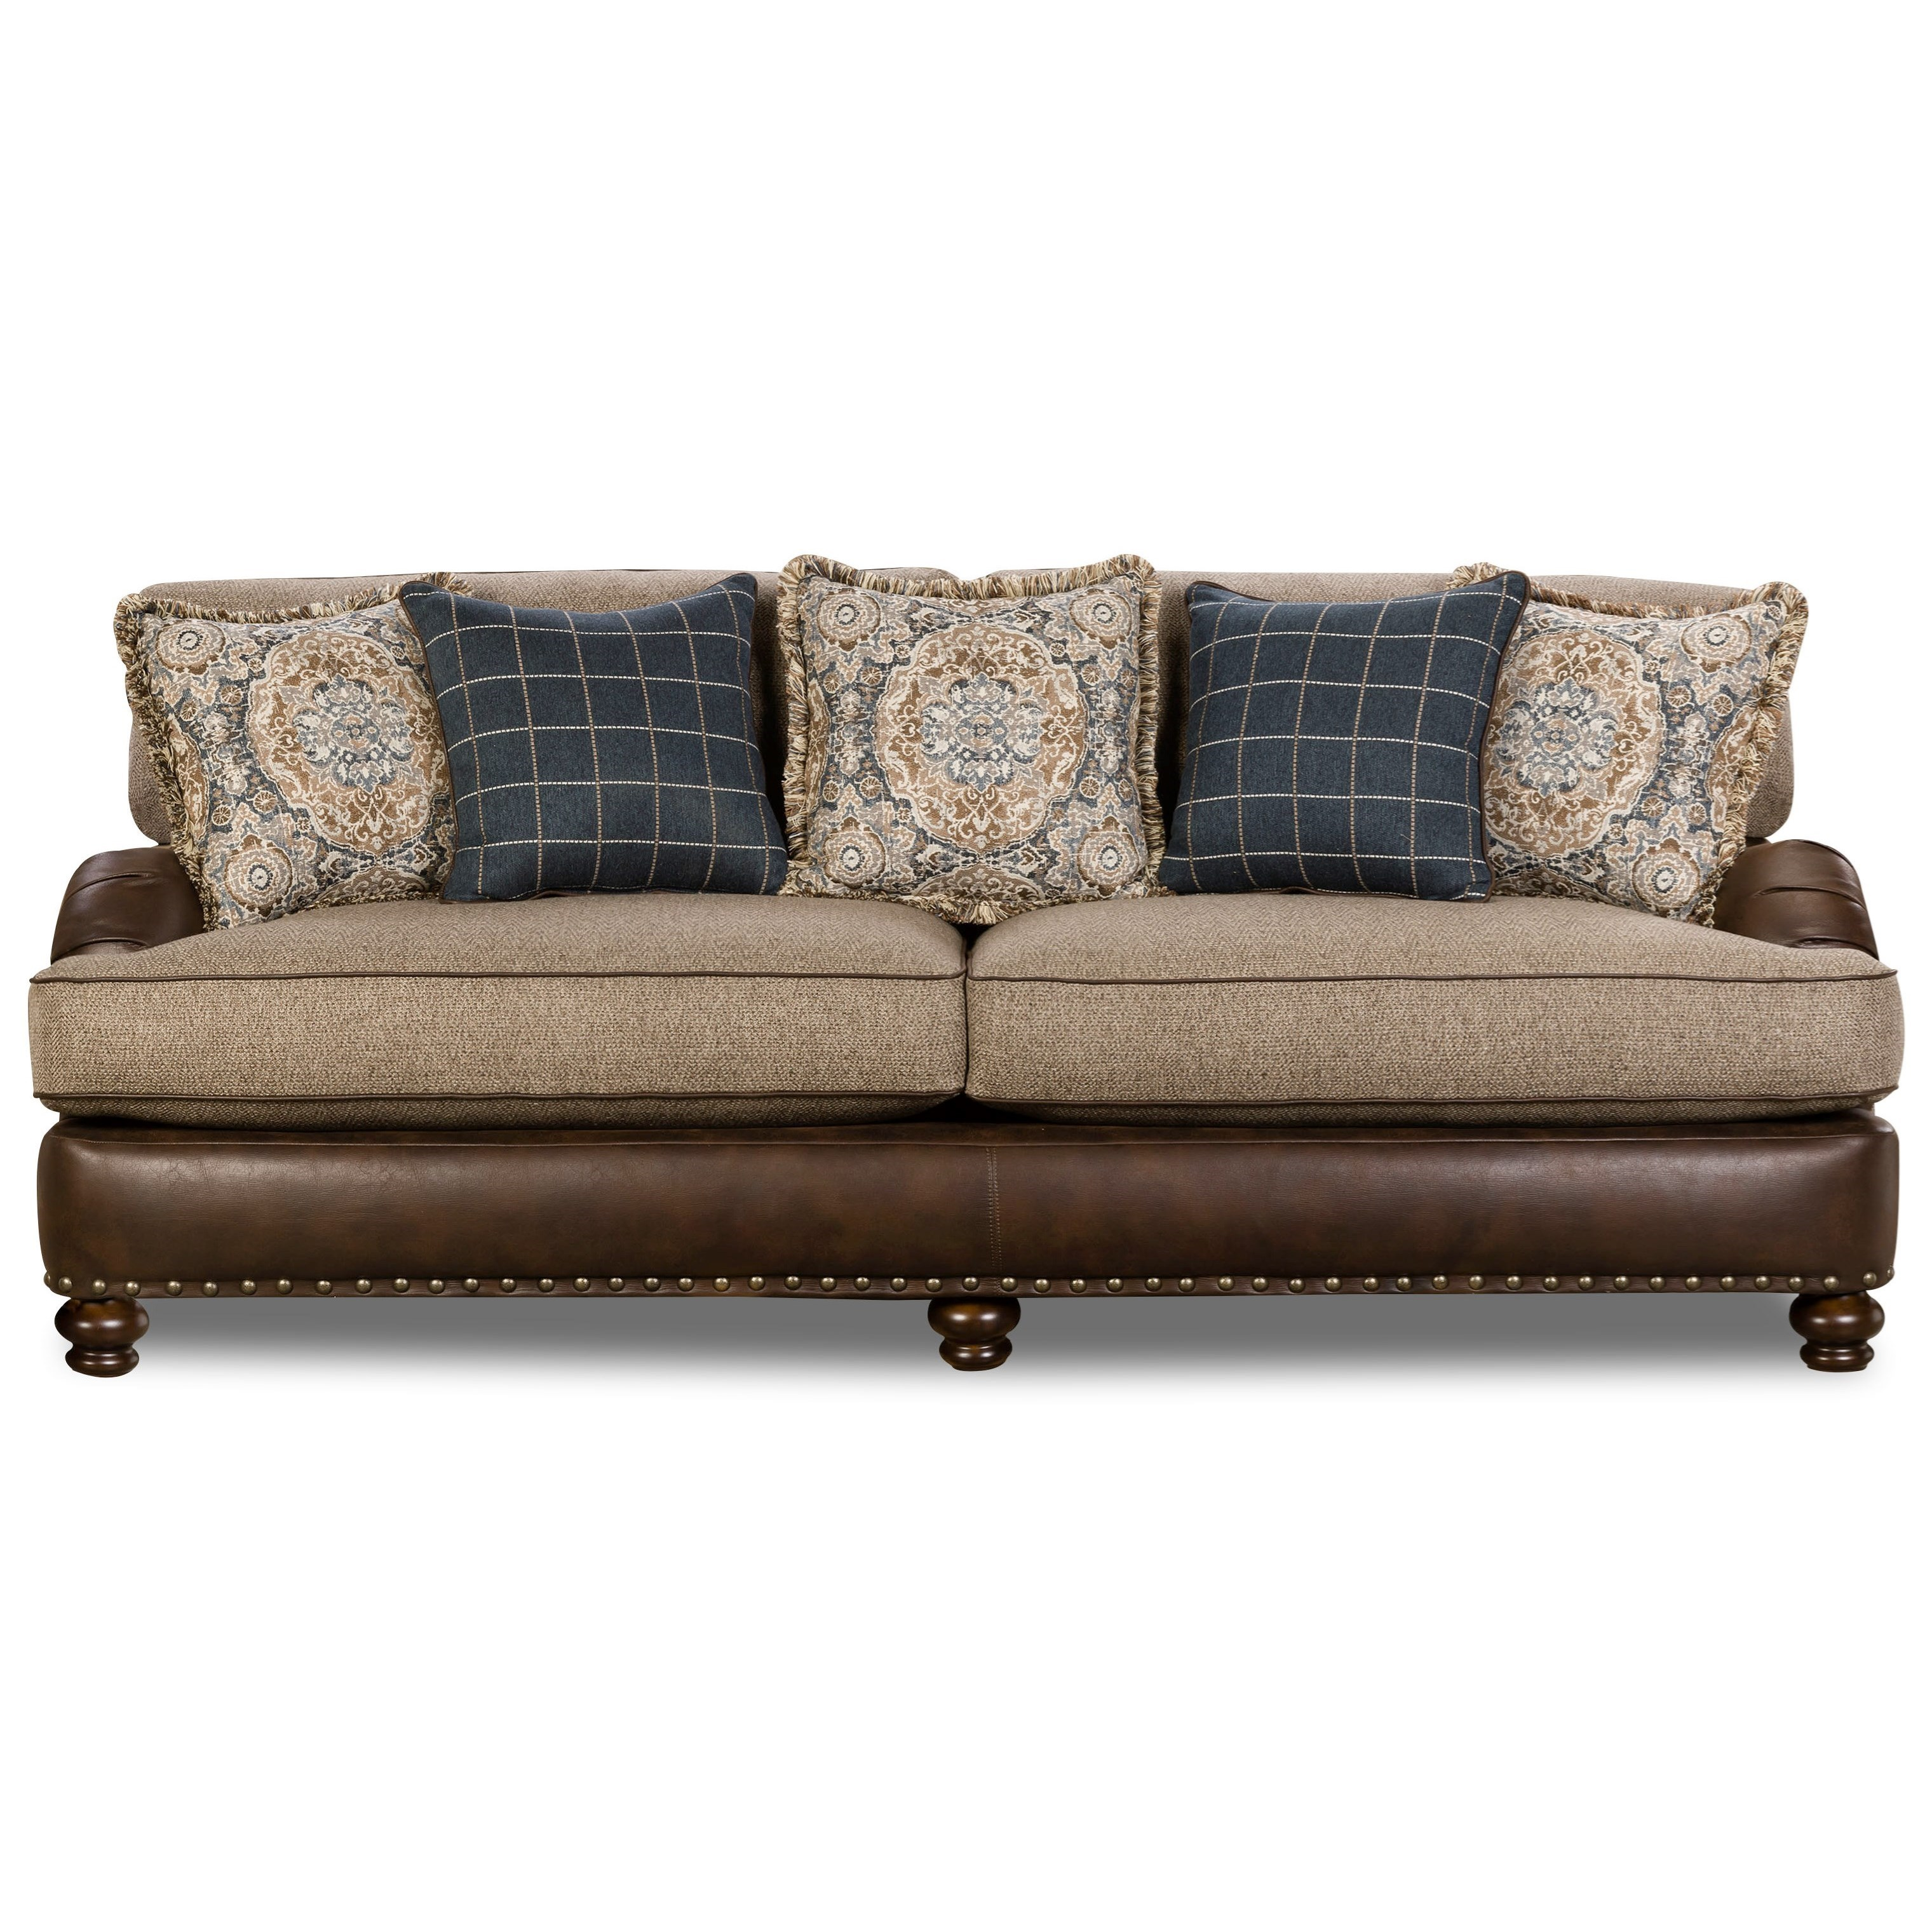 2000 Sofa by Corinthian at Story & Lee Furniture